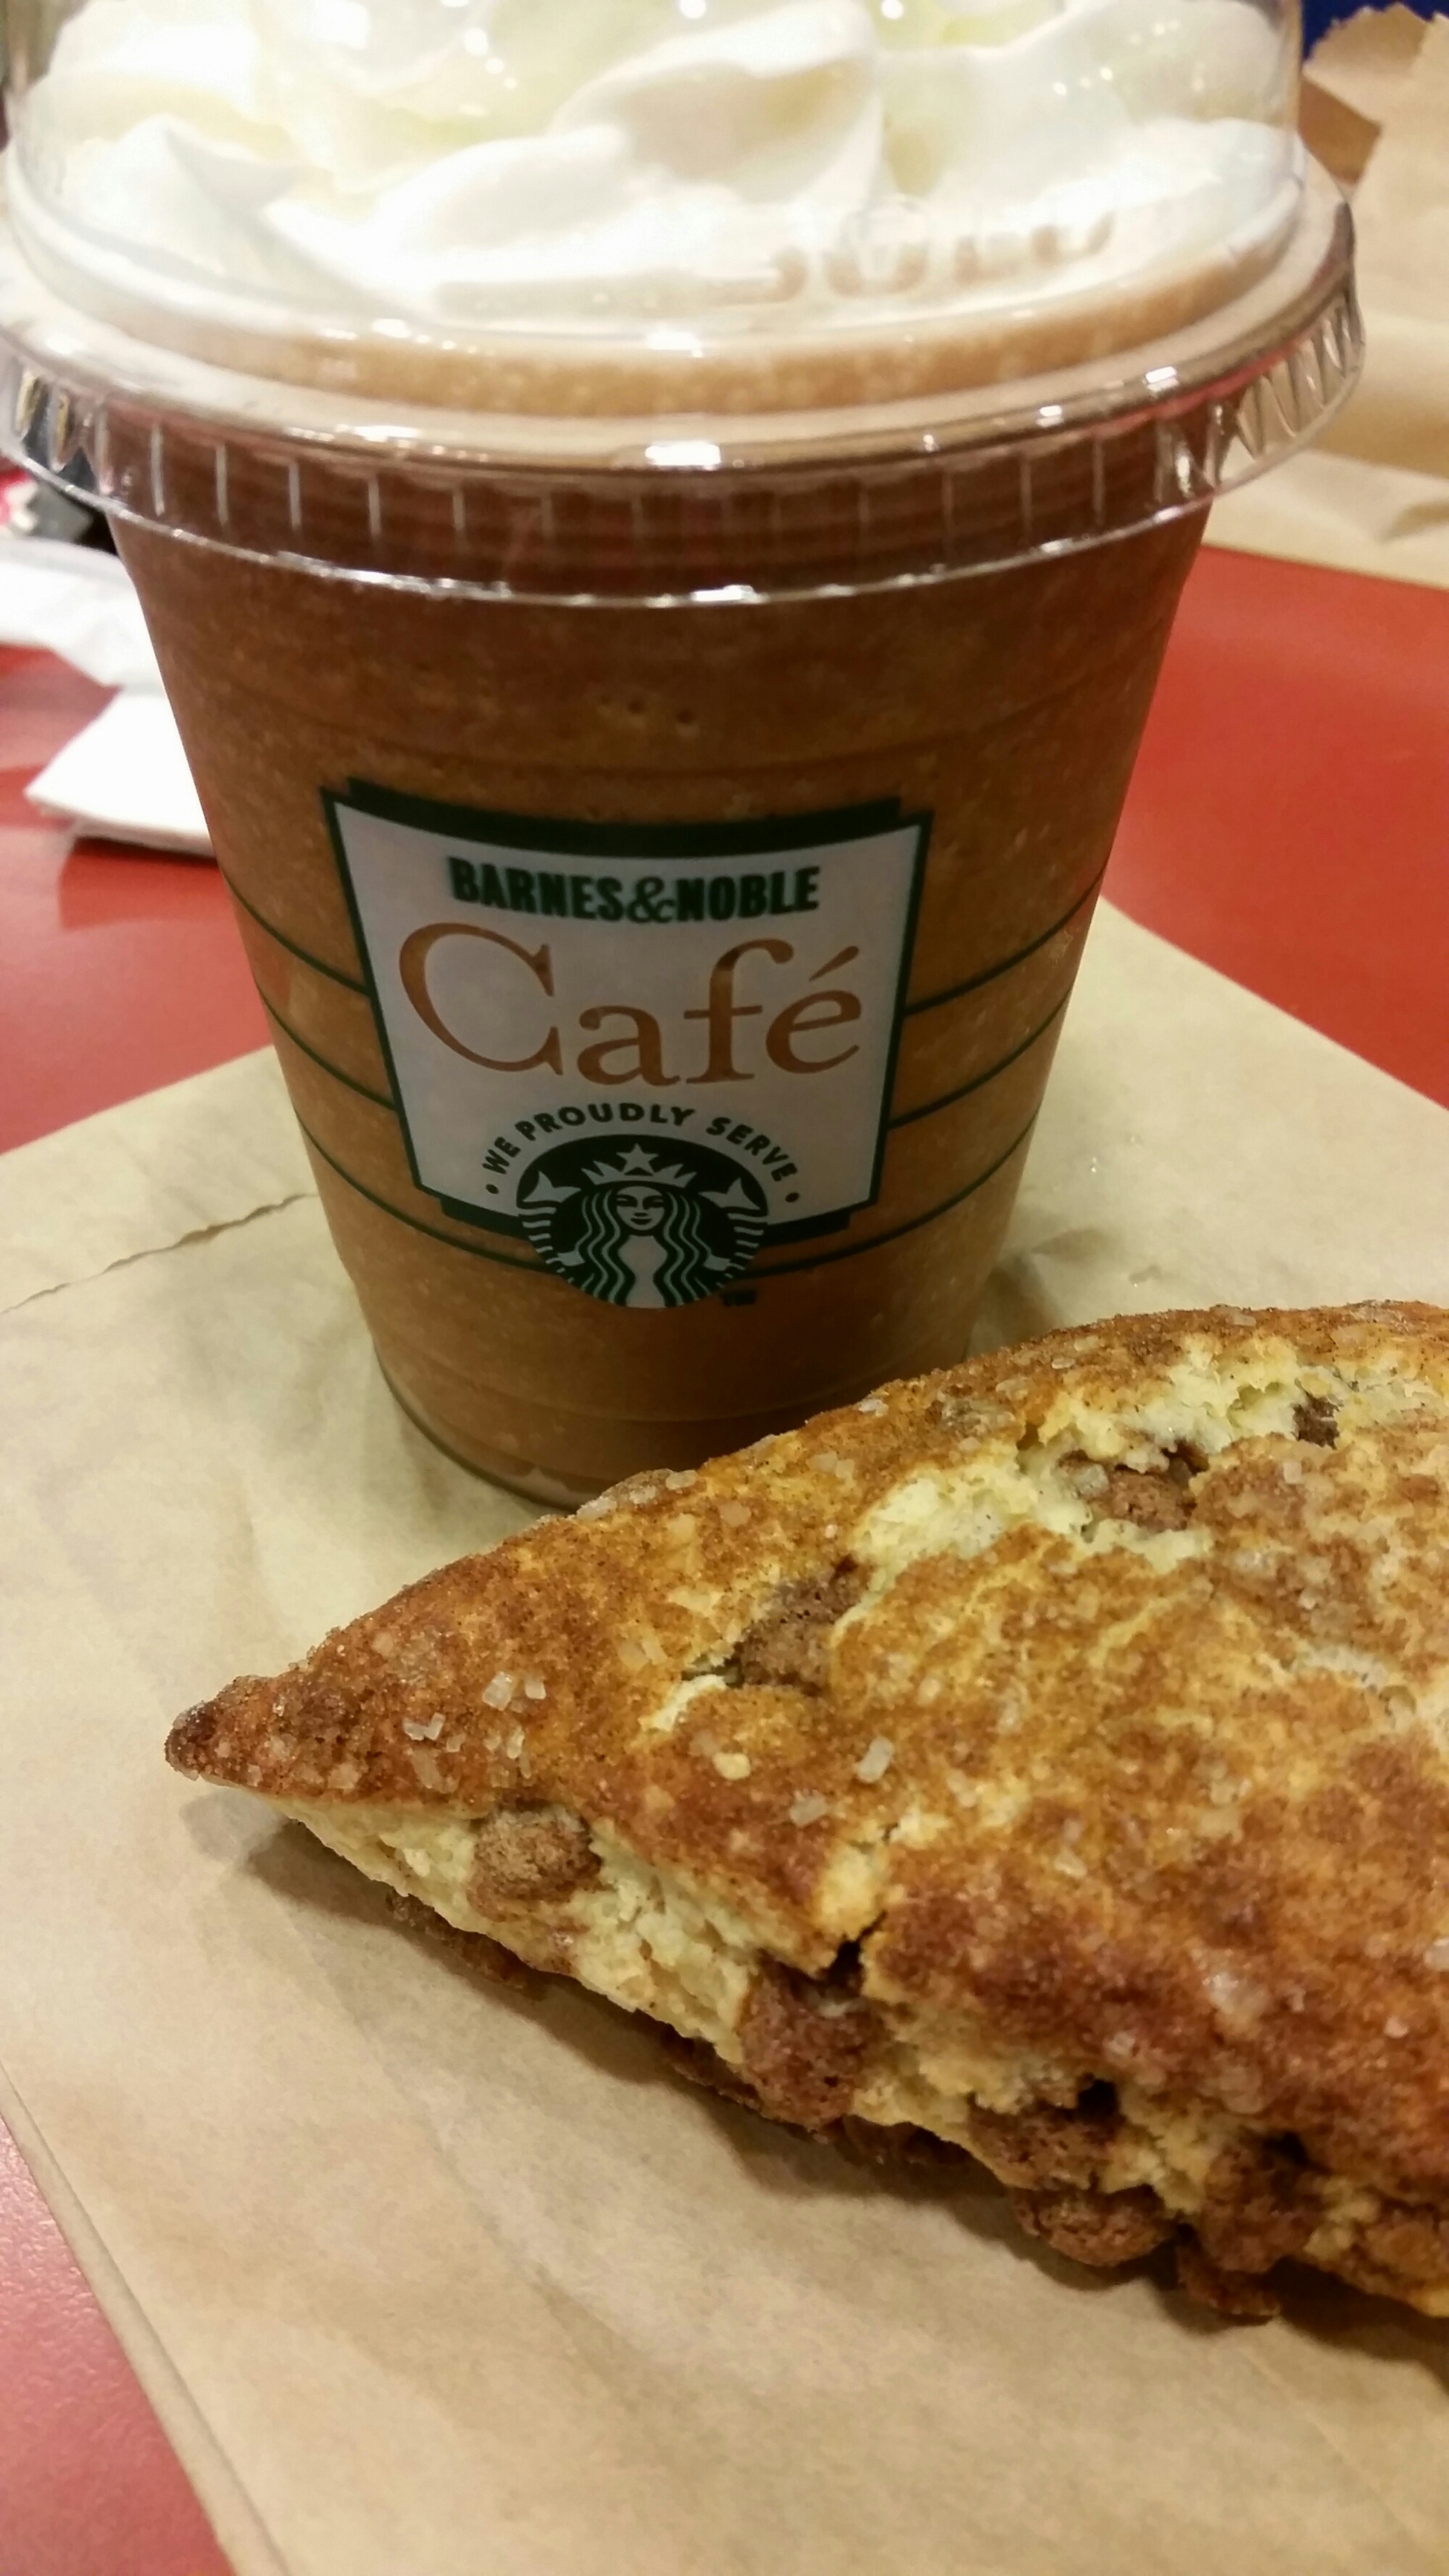 Wordless Wednesday: A snack at Barnes & Noble!